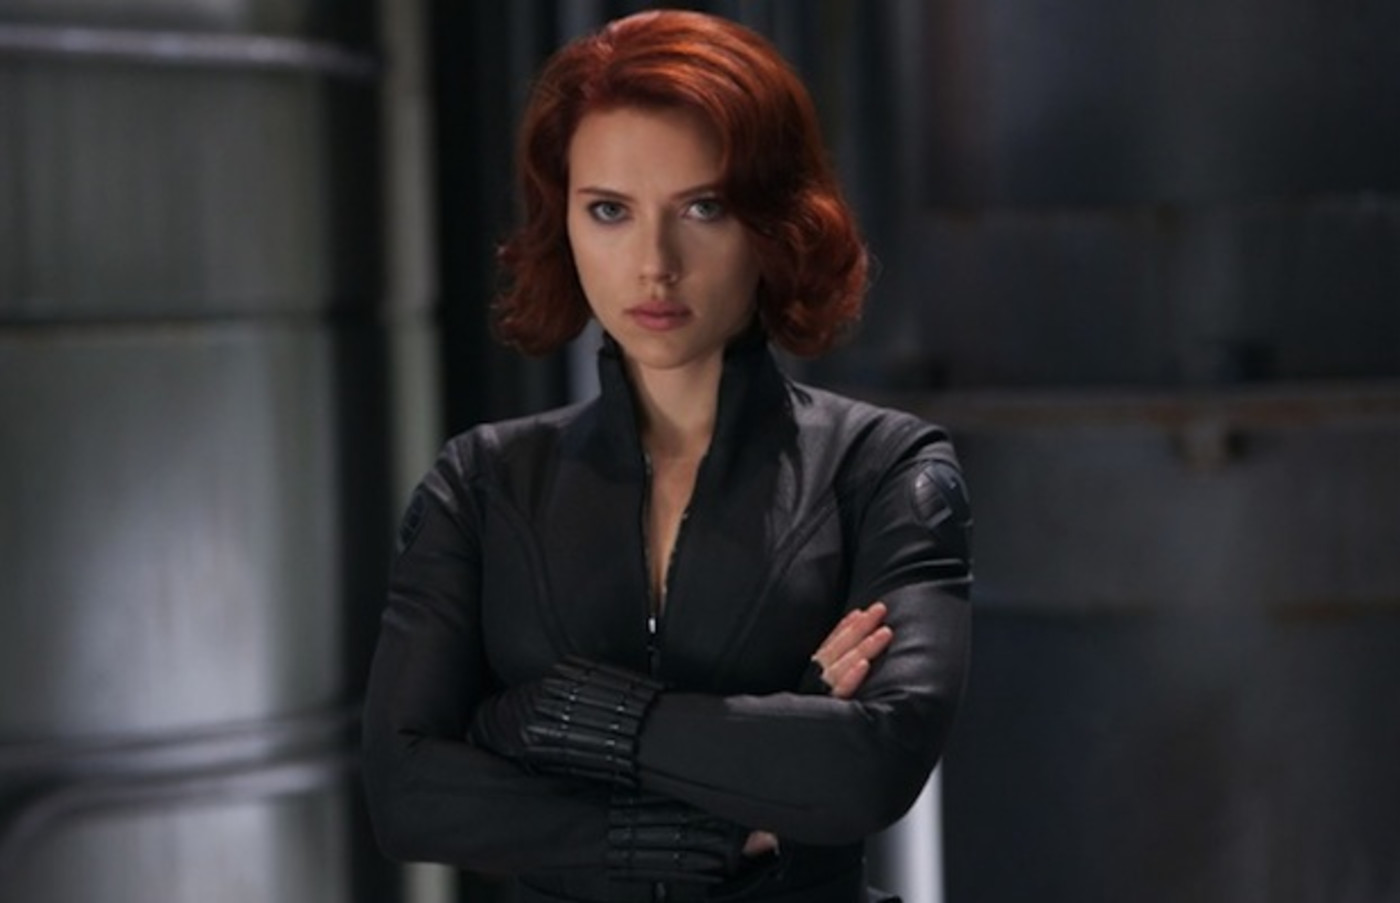 Scarlett Johansson S Pregnancy Could Delay The Avengers Age Of Ultron Production Complex